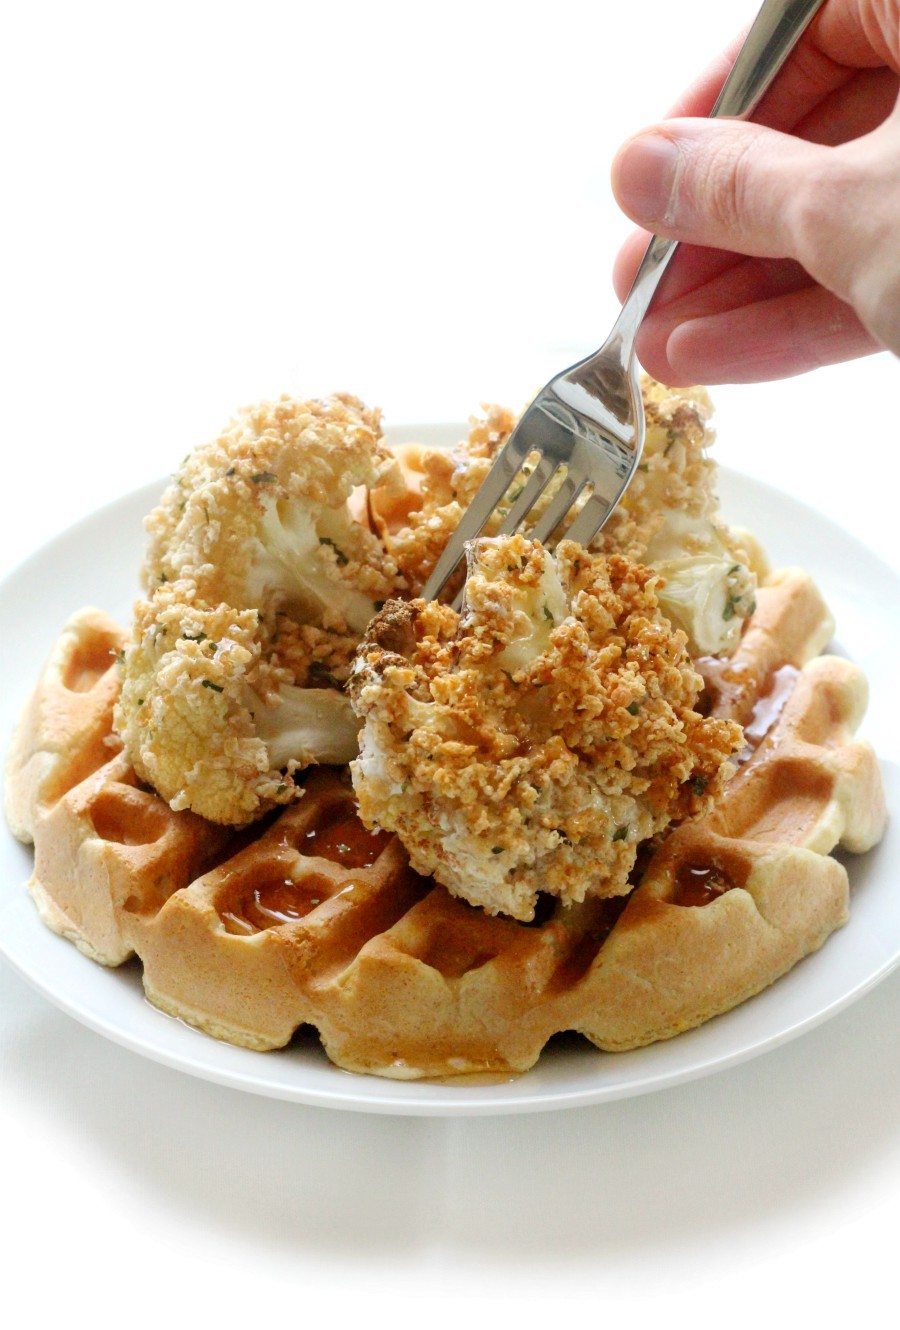 fork-and-hand-eating-gluten-free-vegan-chicken-and-waffles